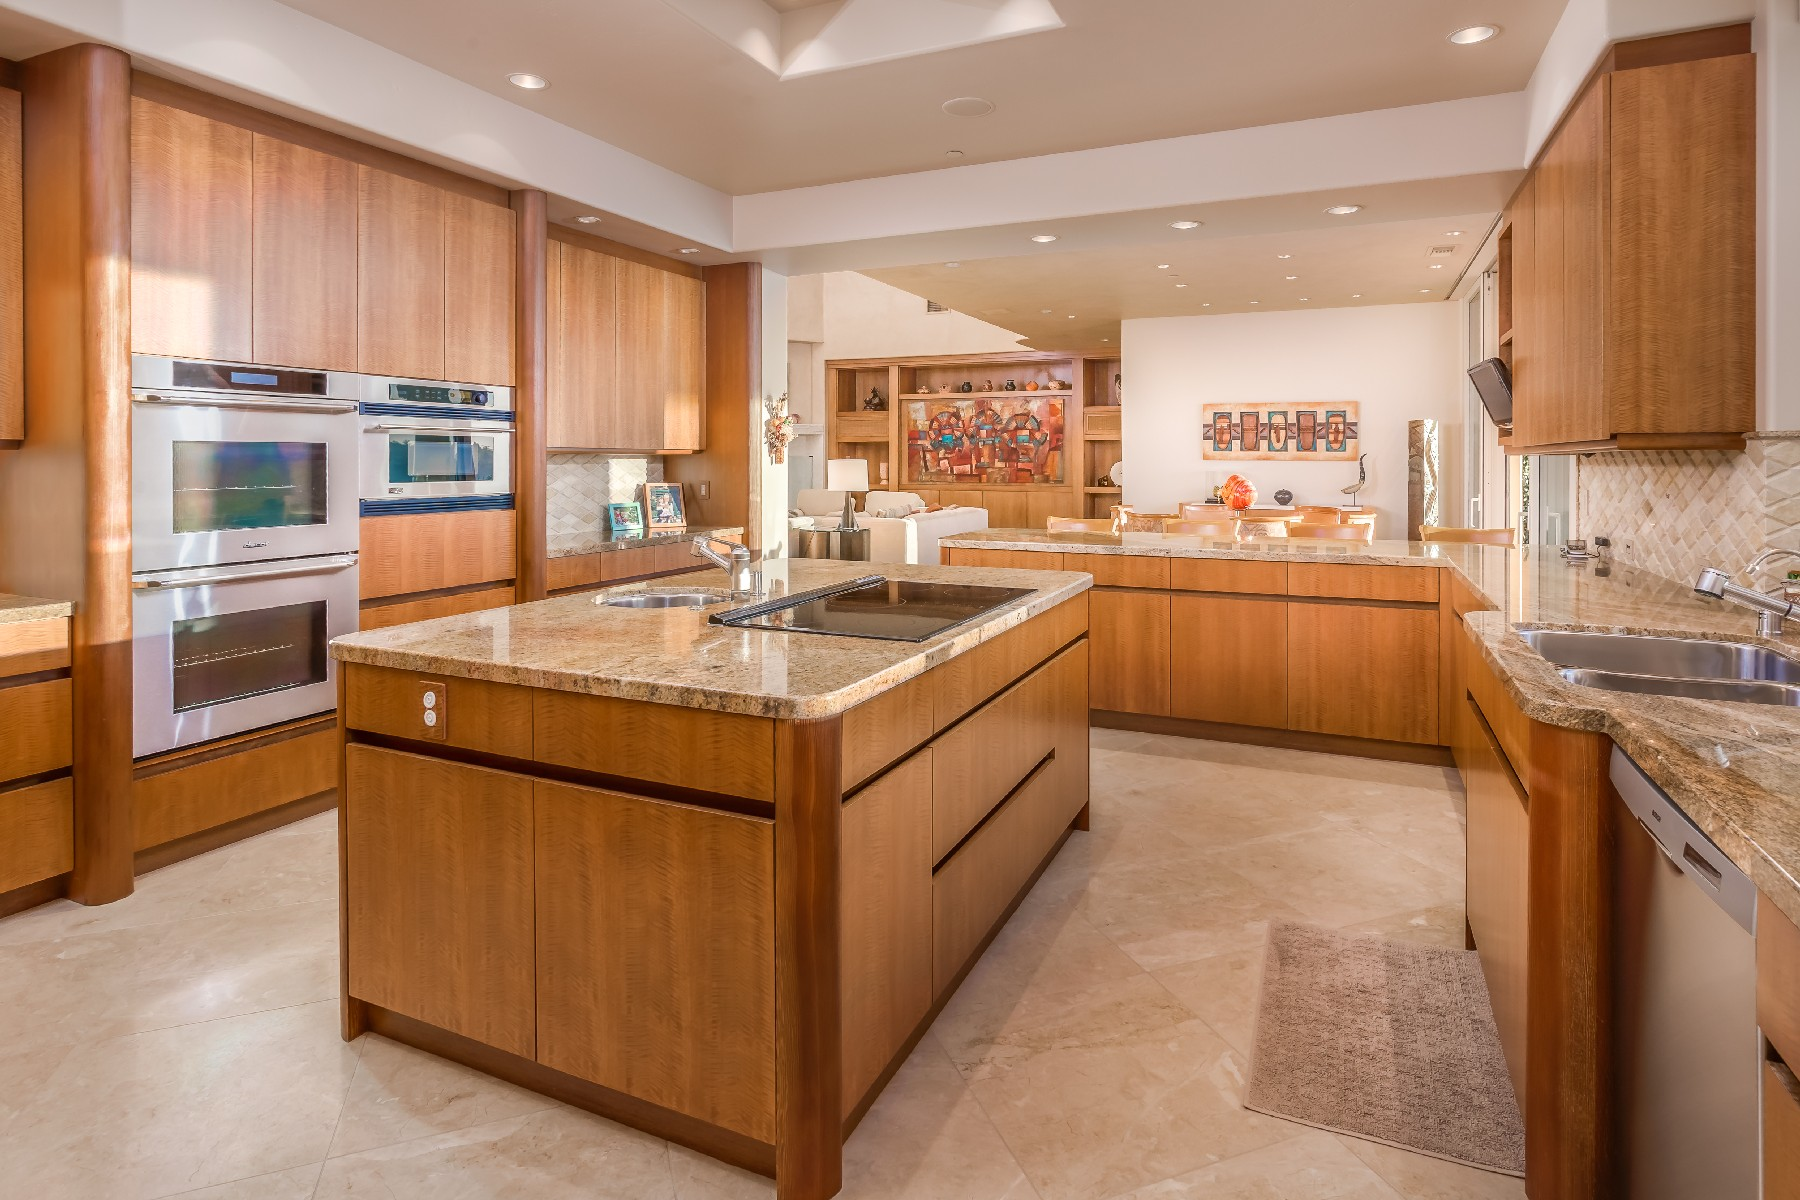 Additional photo for property listing at 14630 Calle Diegueno  Rancho Santa Fe, California 92067 United States